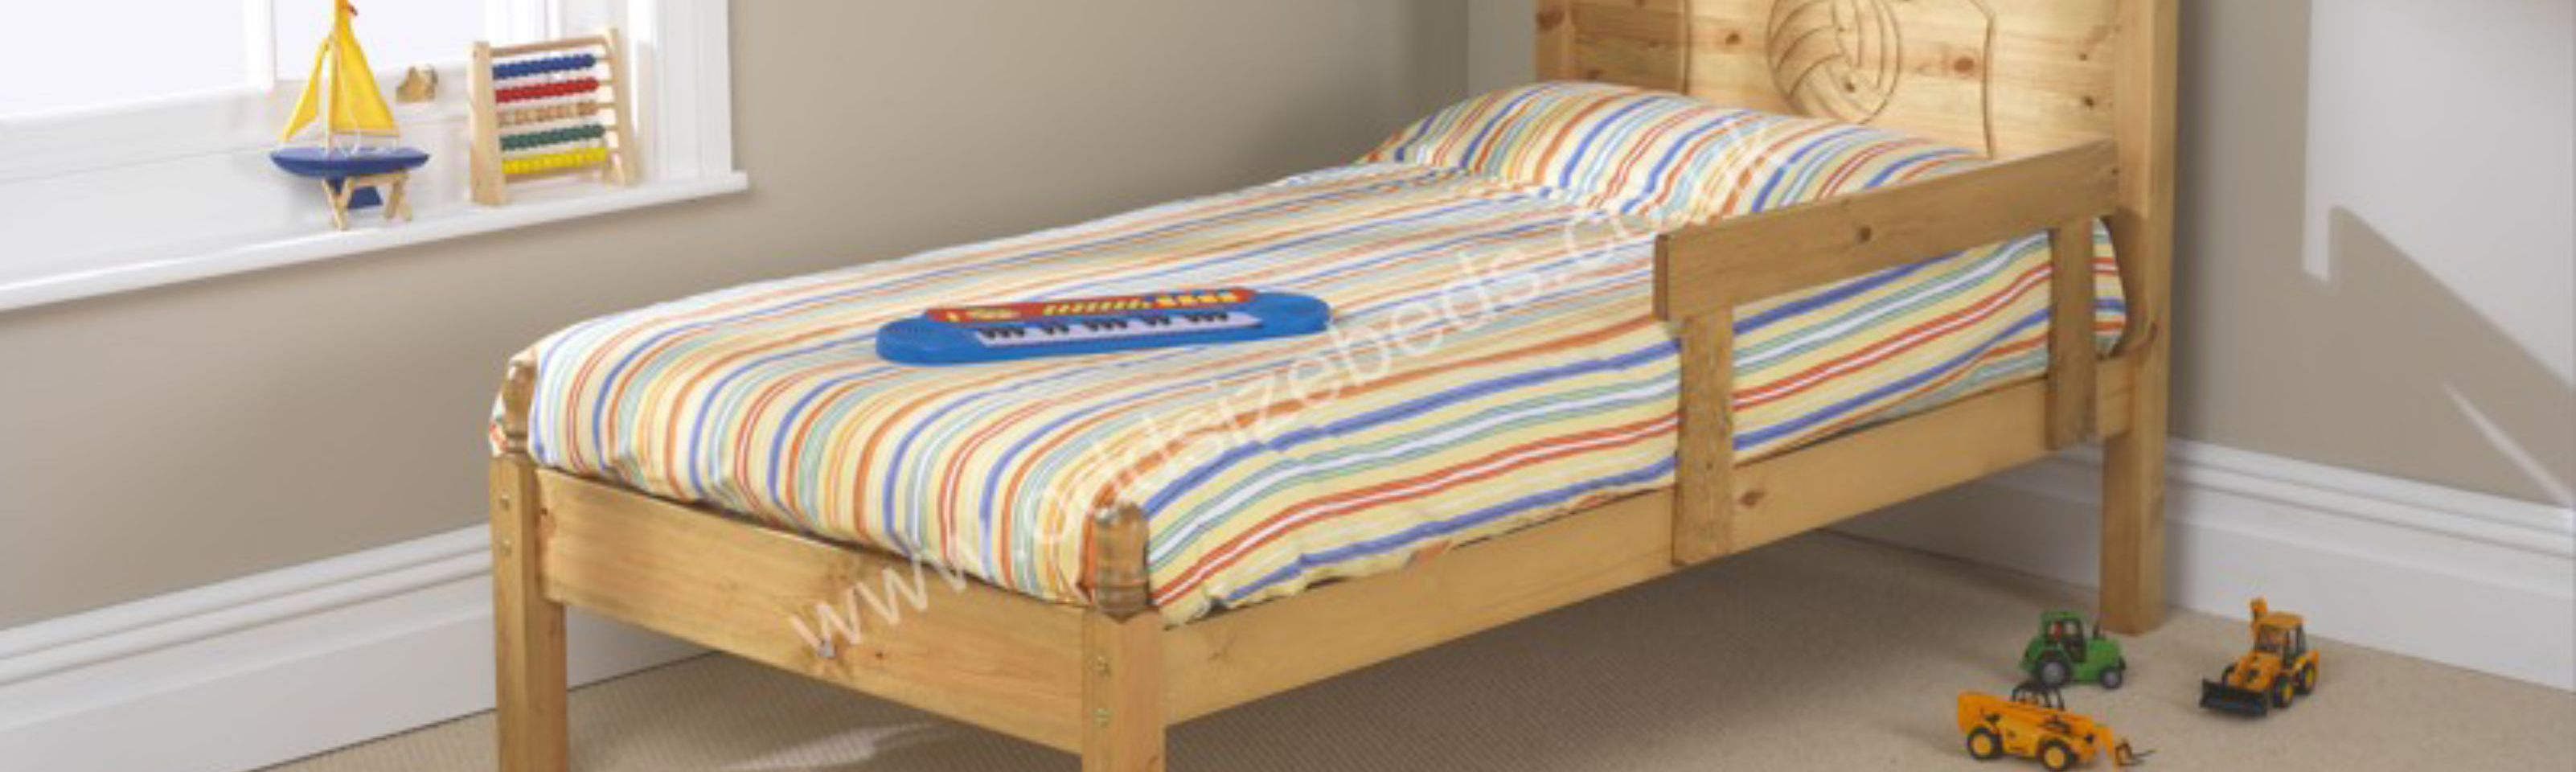 Child's Wooden Bed – Football Motif